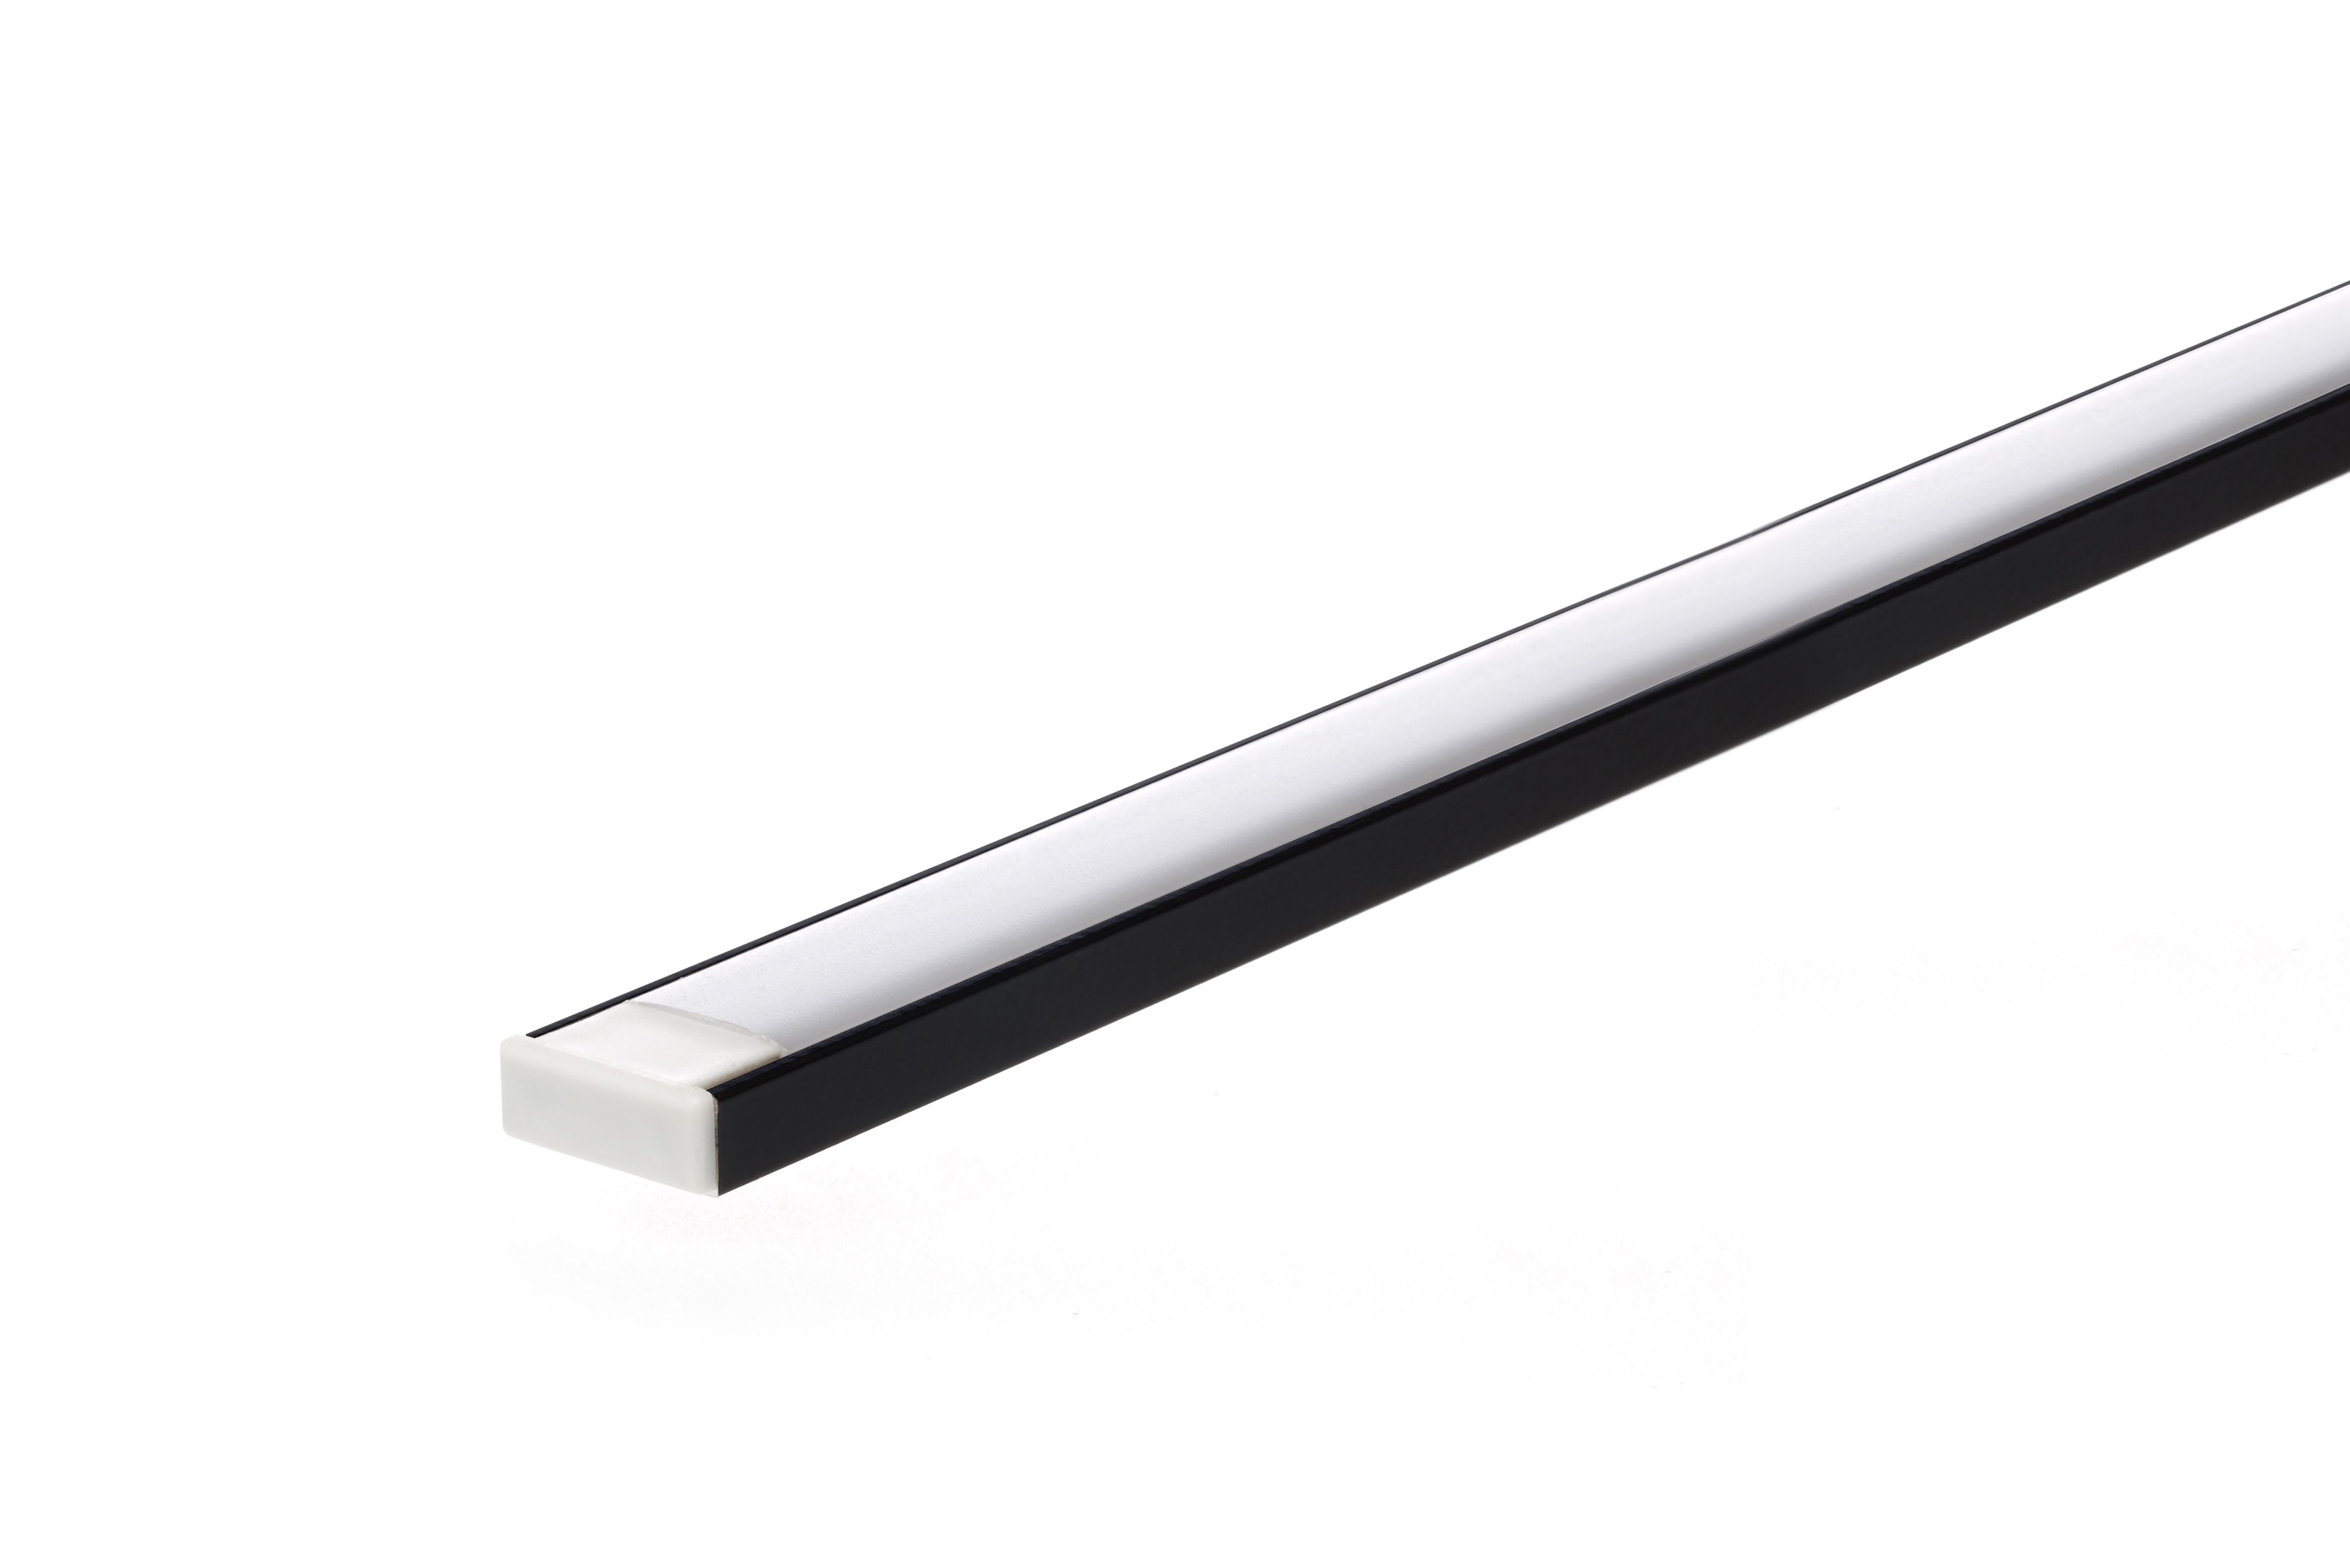 lightline-minislim-1-mj-lighting-v2